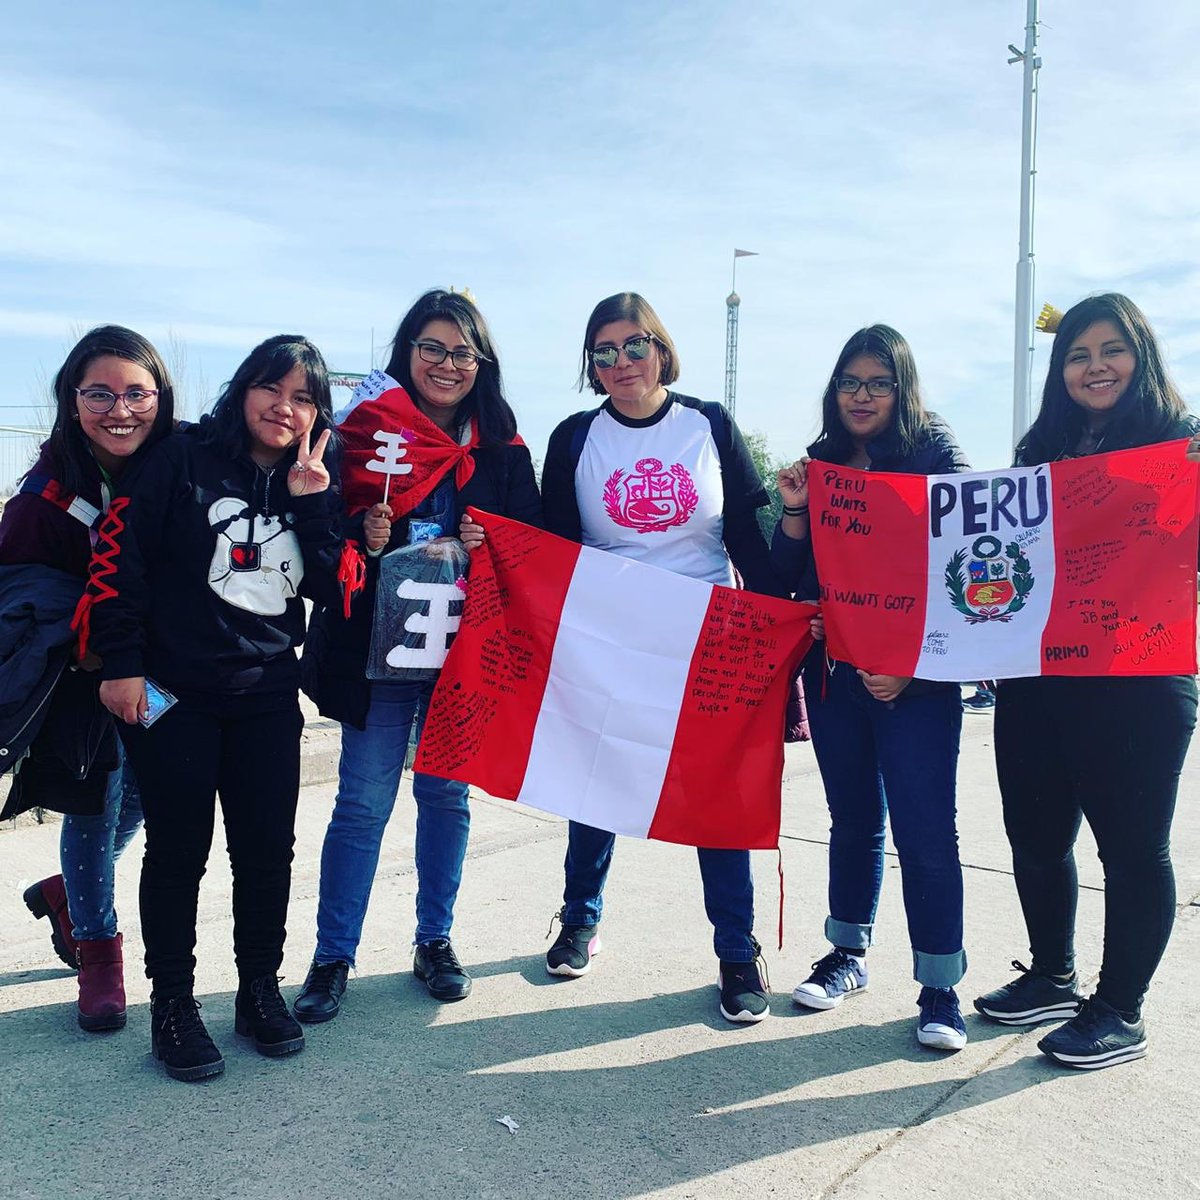 (1/2) CHILE IGOT7  These dedicated fans made the trip from Peru to see @GOT7Official!  Bee saw GOT7 for the 1st time, & was so inspired that she got a tattoo after the show!  These ladies came prepared with balloons to show their love!  #GOT7inChile #LiveNation #Bizarro<br>http://pic.twitter.com/awVTsOcqEq